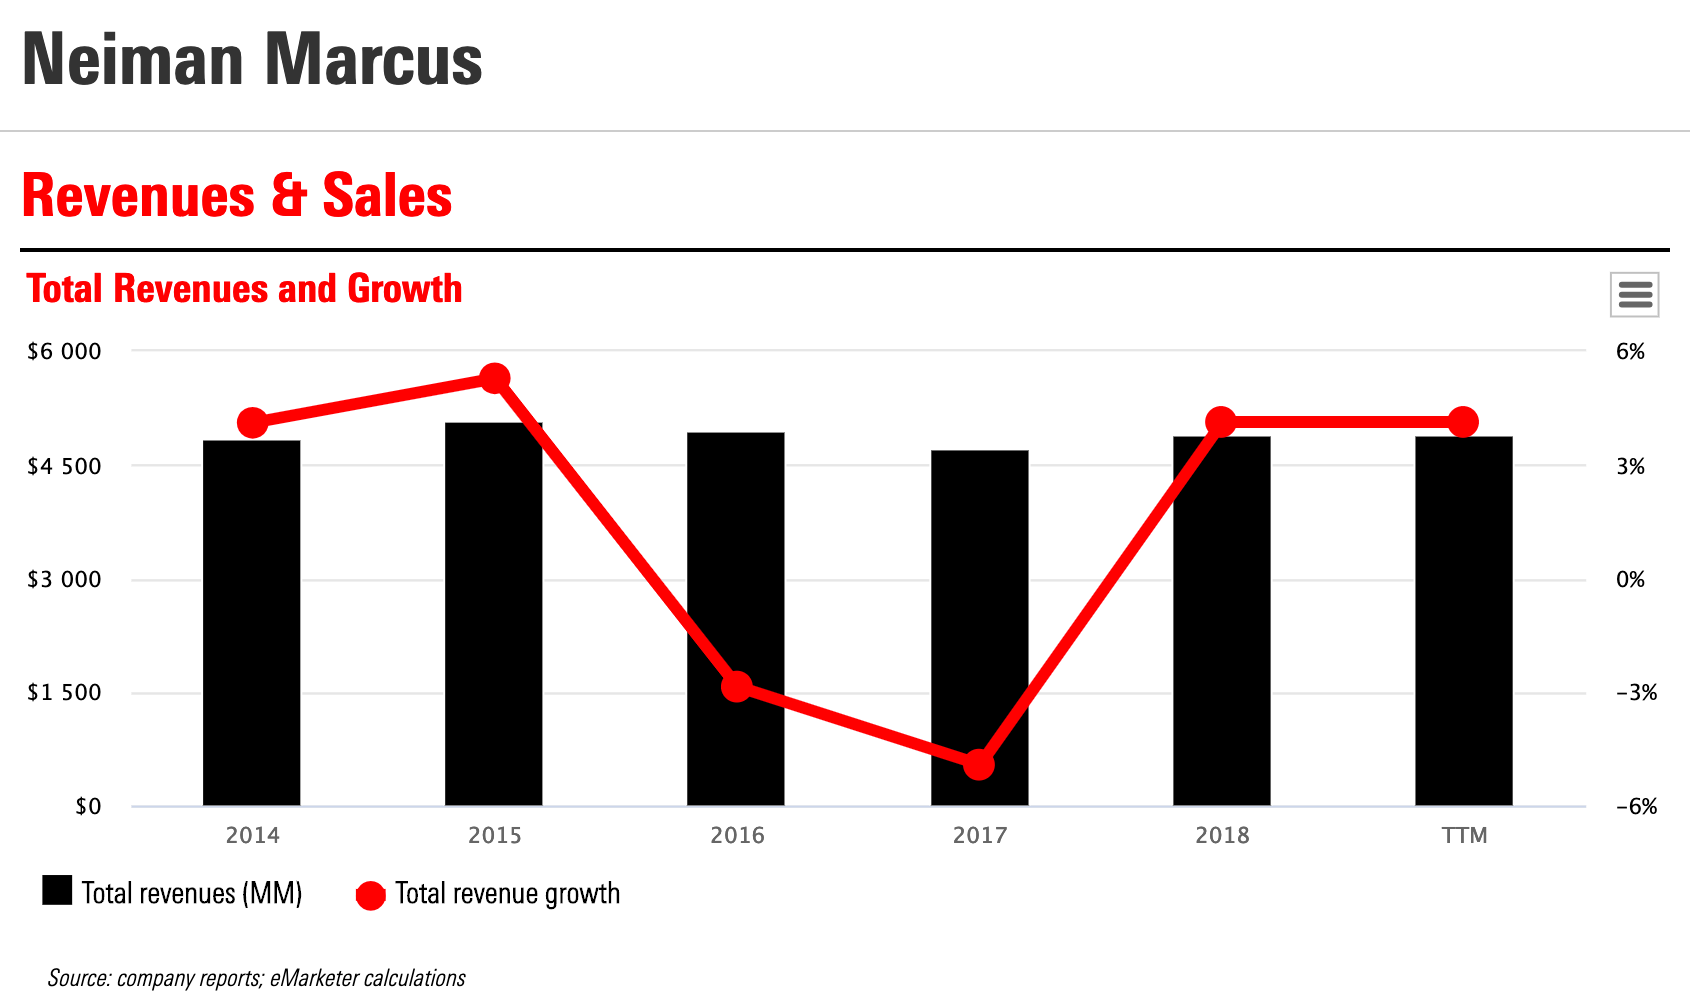 Neiman Marcus Revenue Growth